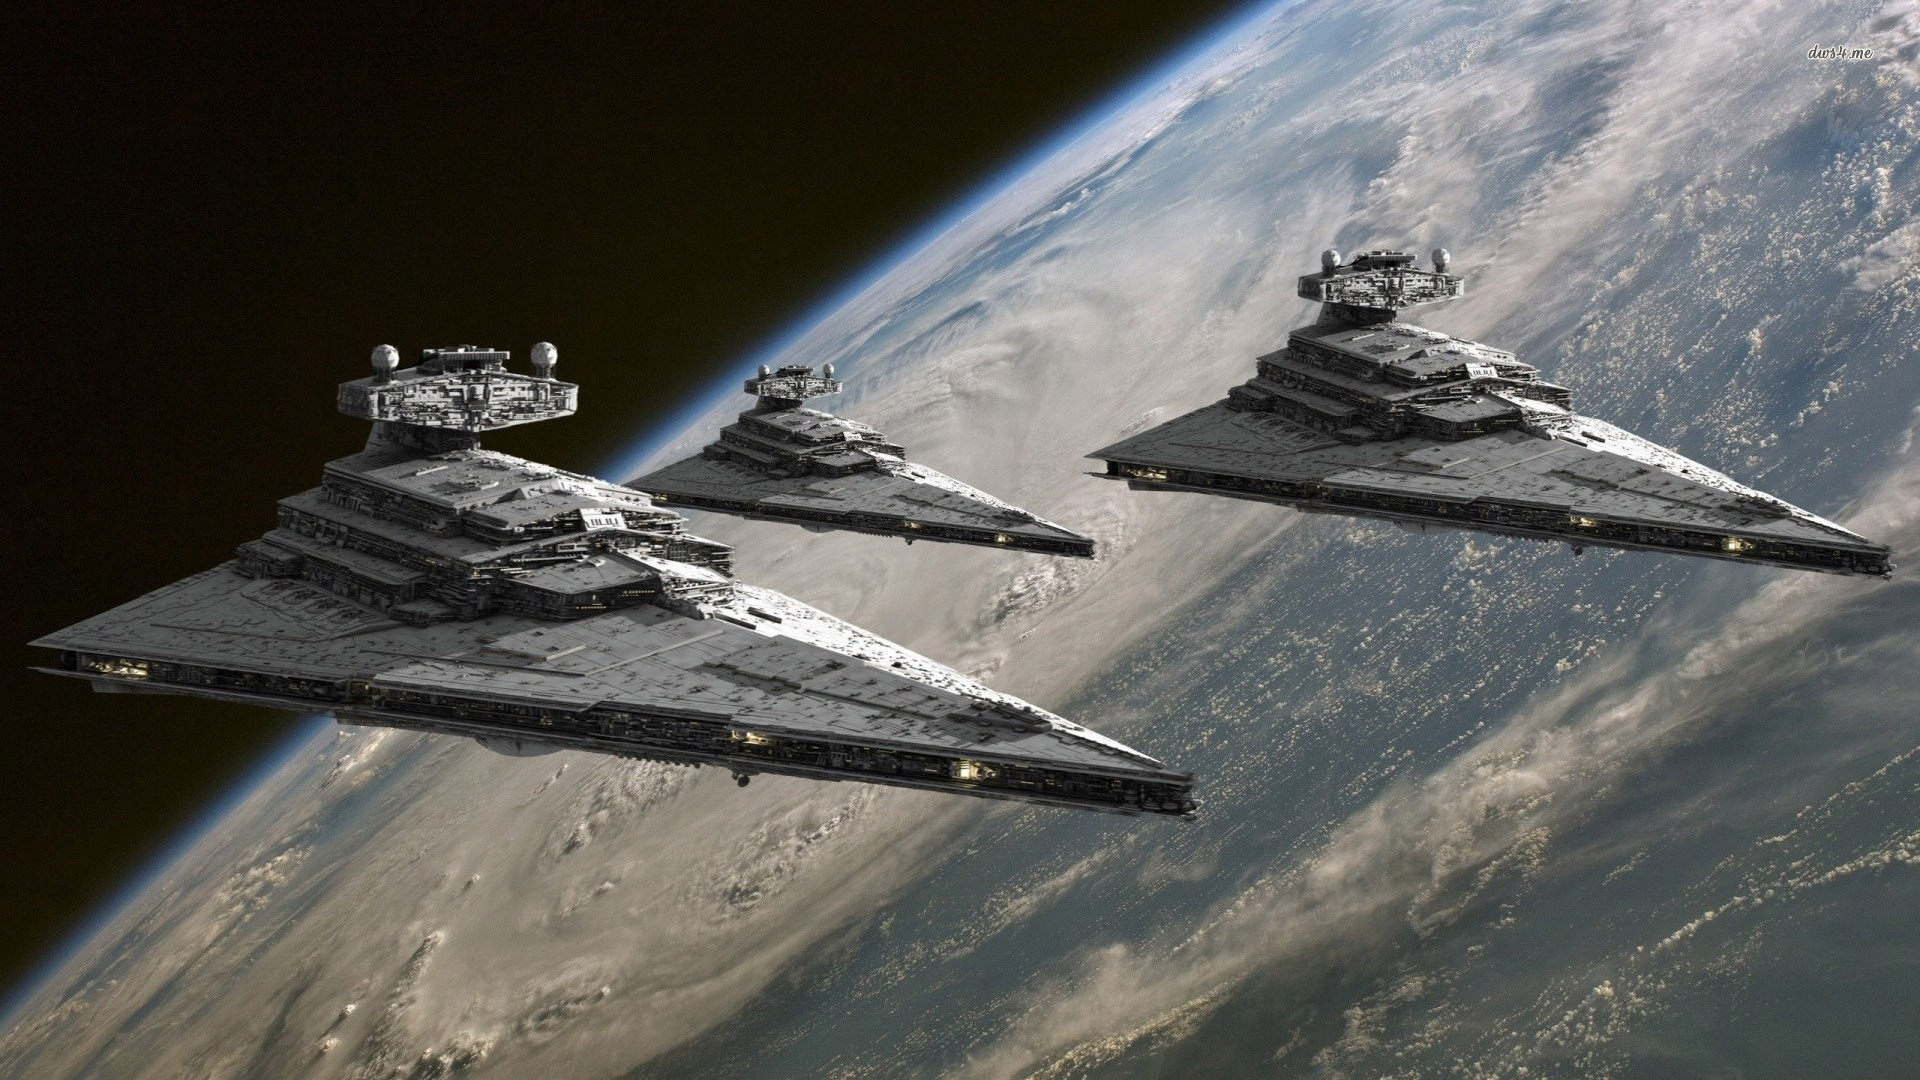 1920x1080 Star Wars Imperial Star Destroyer Wallpaper